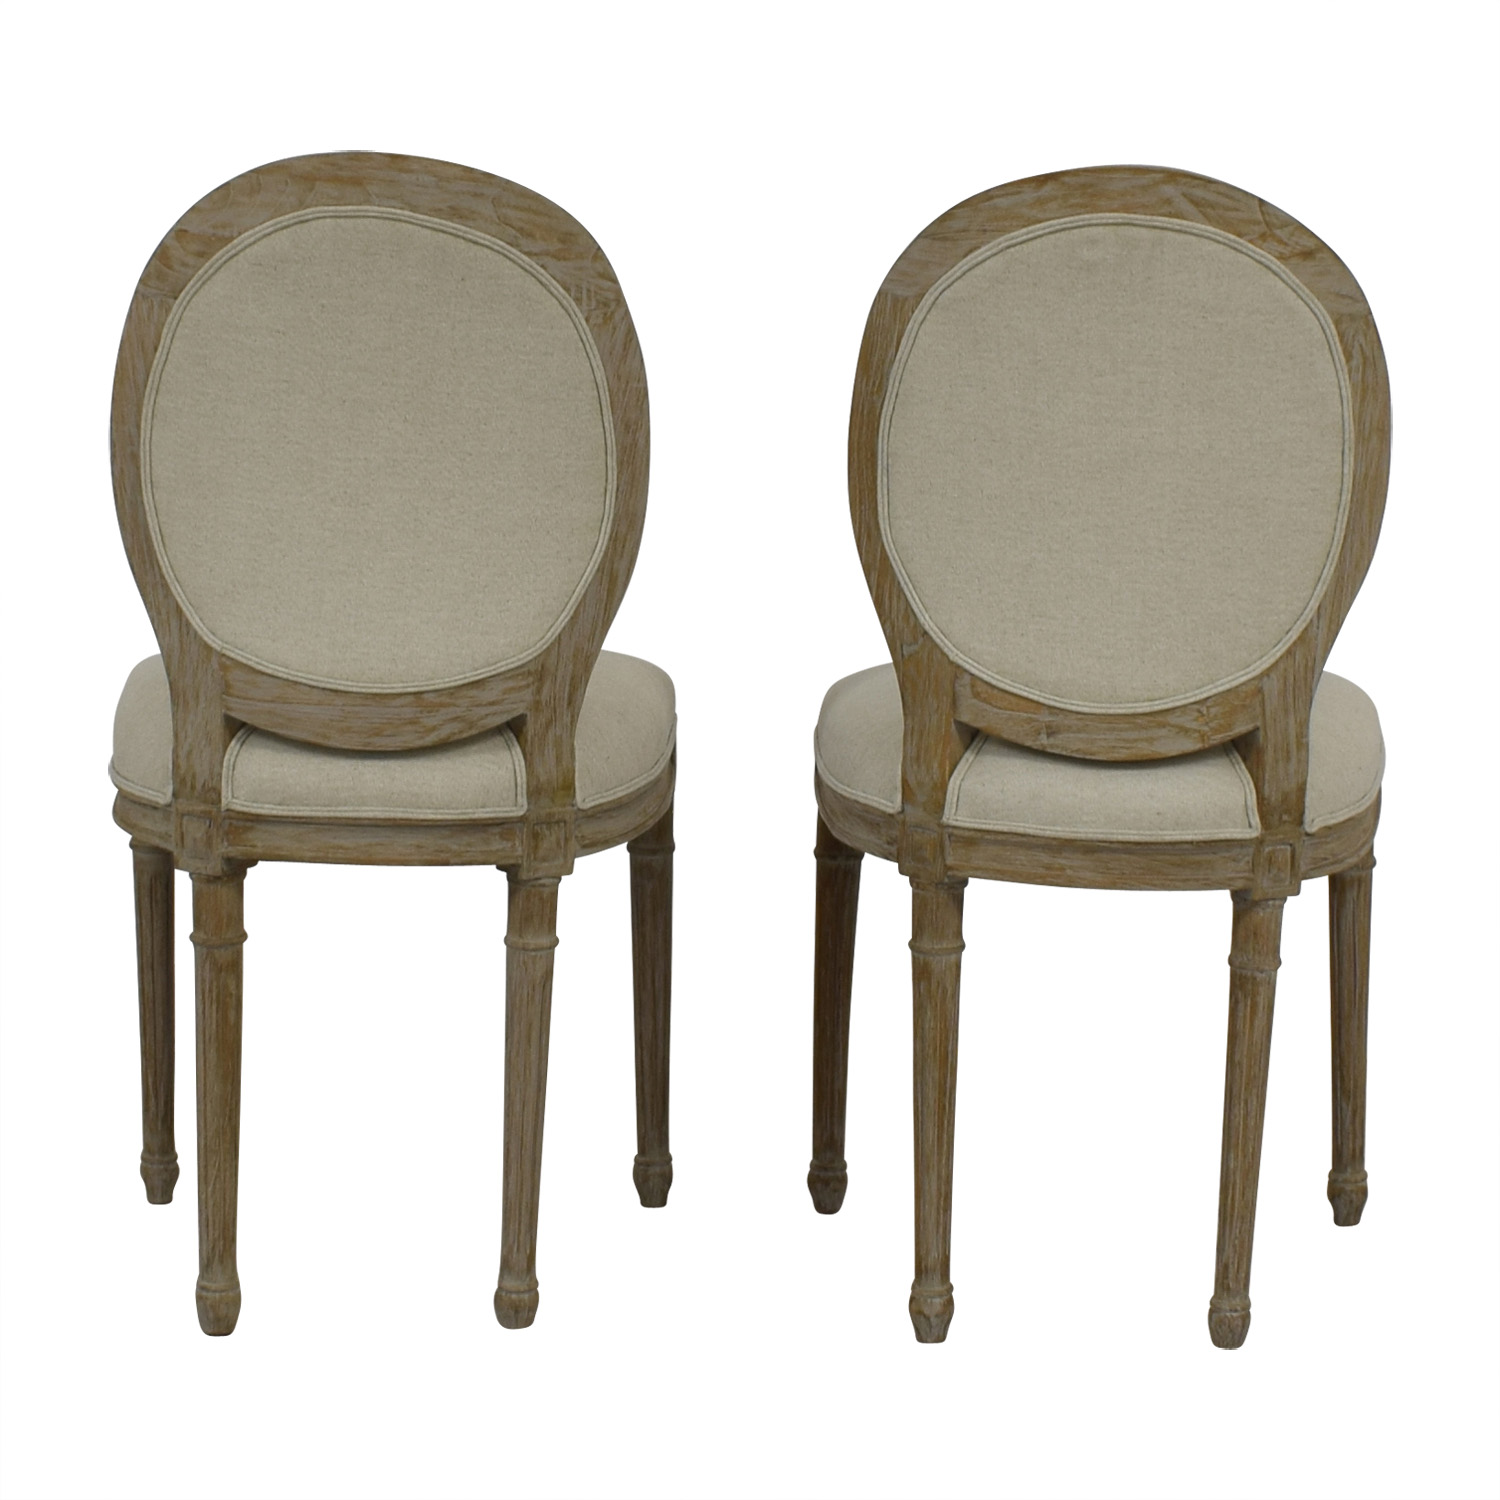 Furniture Masters Furniture Masters Beige Upholstered Dining Chairs on sale